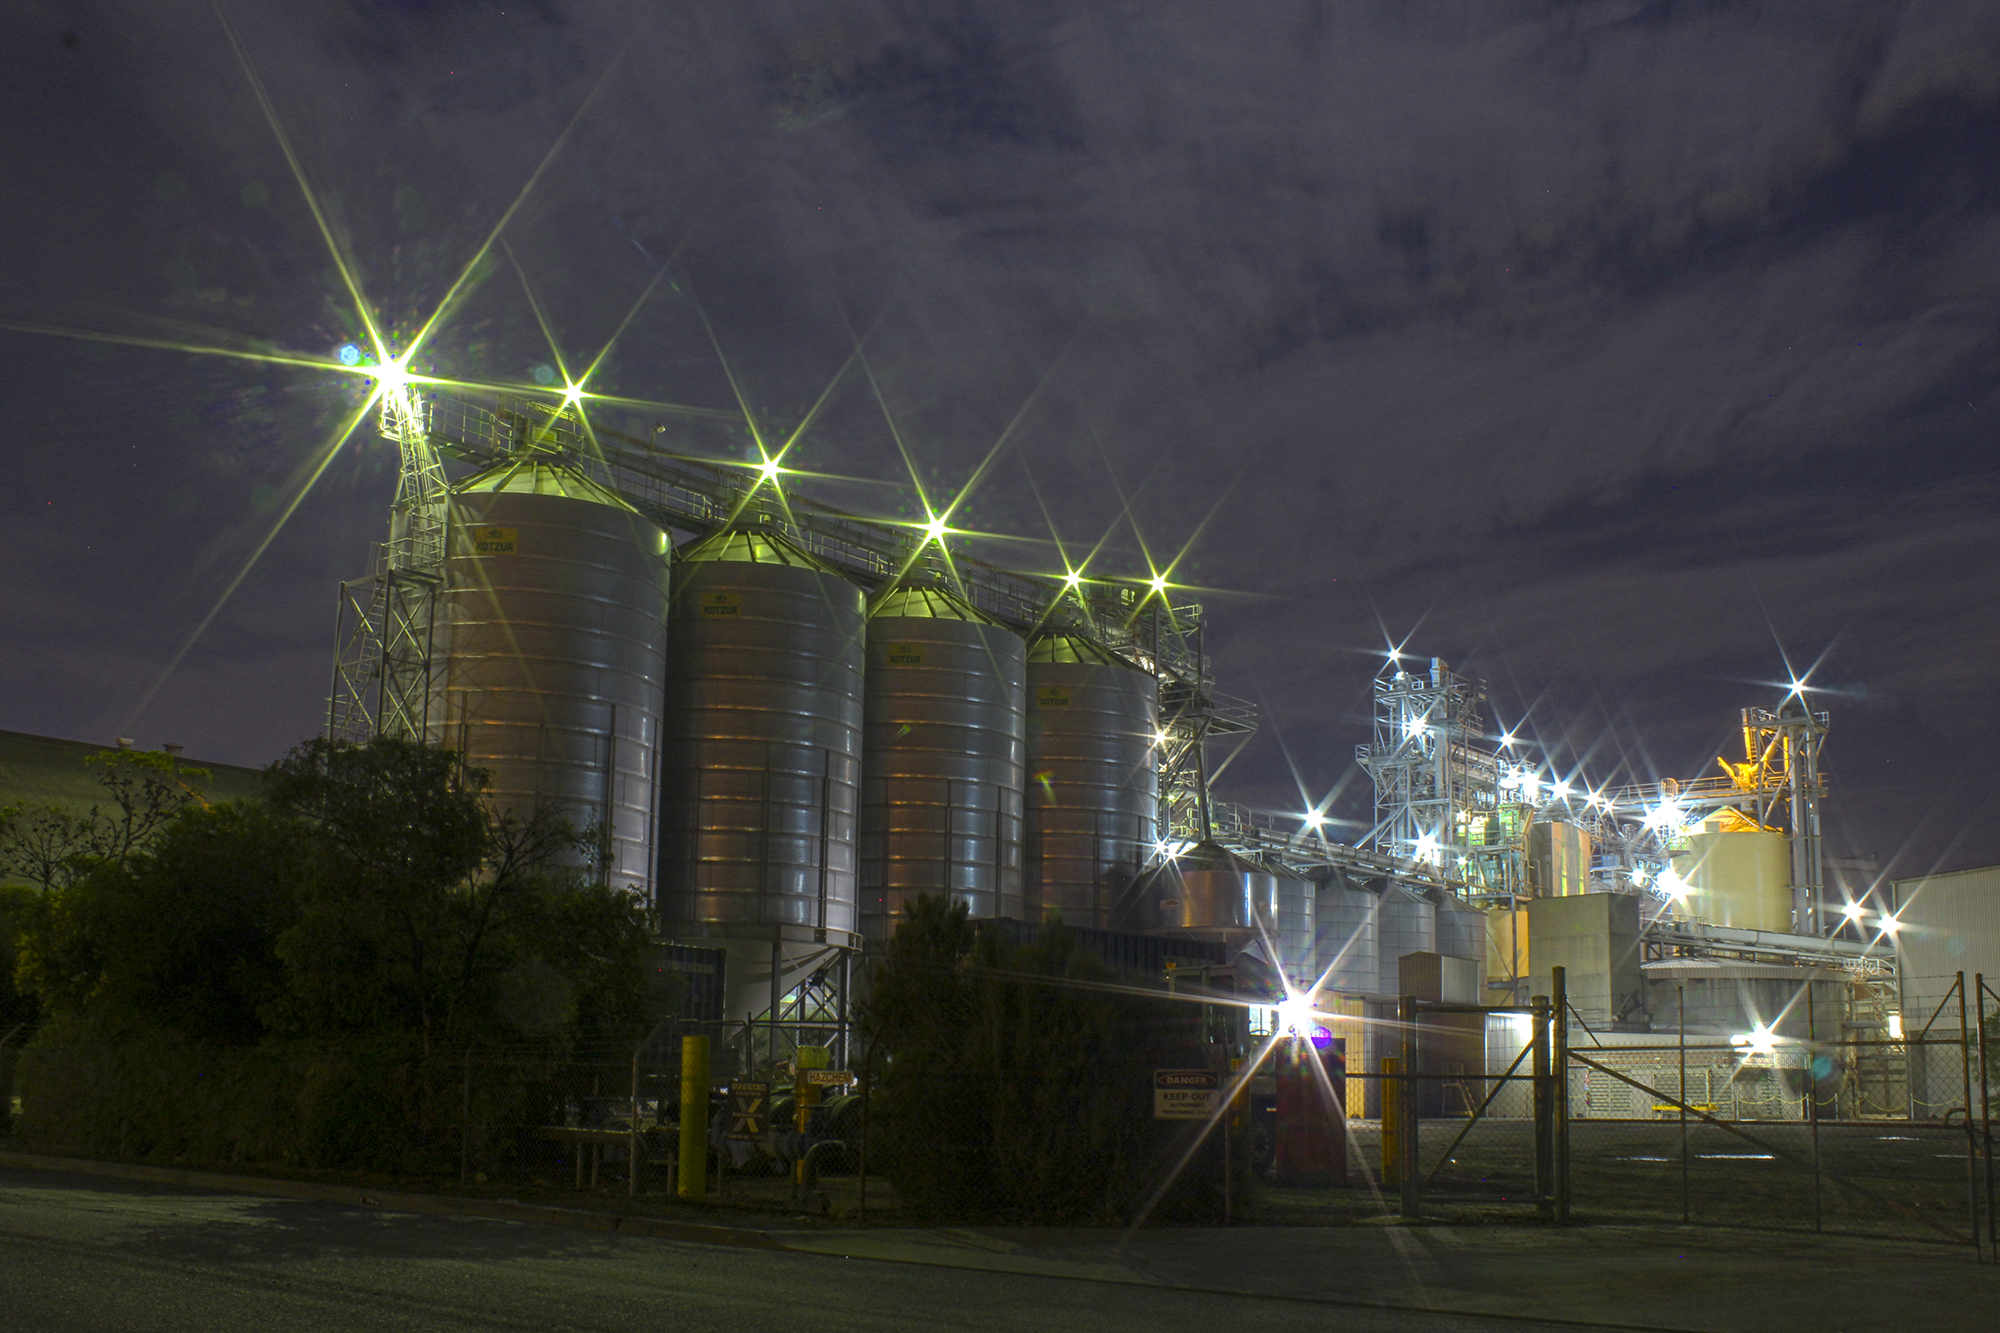 Industrial light show on the path from Moorpanyal Park to Steampacket Gardens